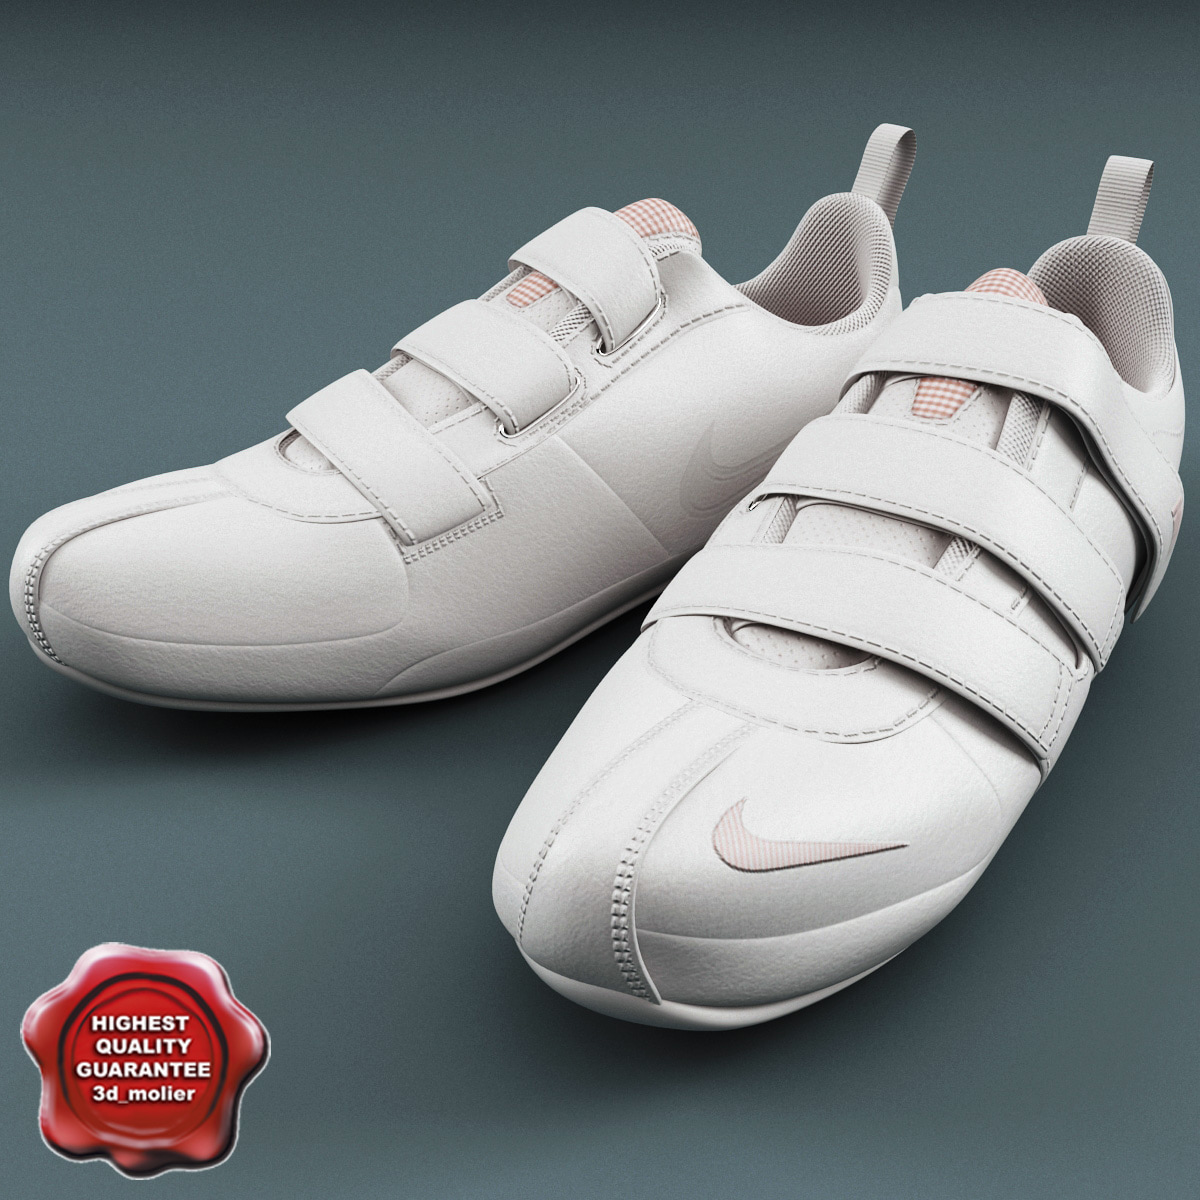 Sneakers_Nike_Fixed_Speed_V_00.jpg